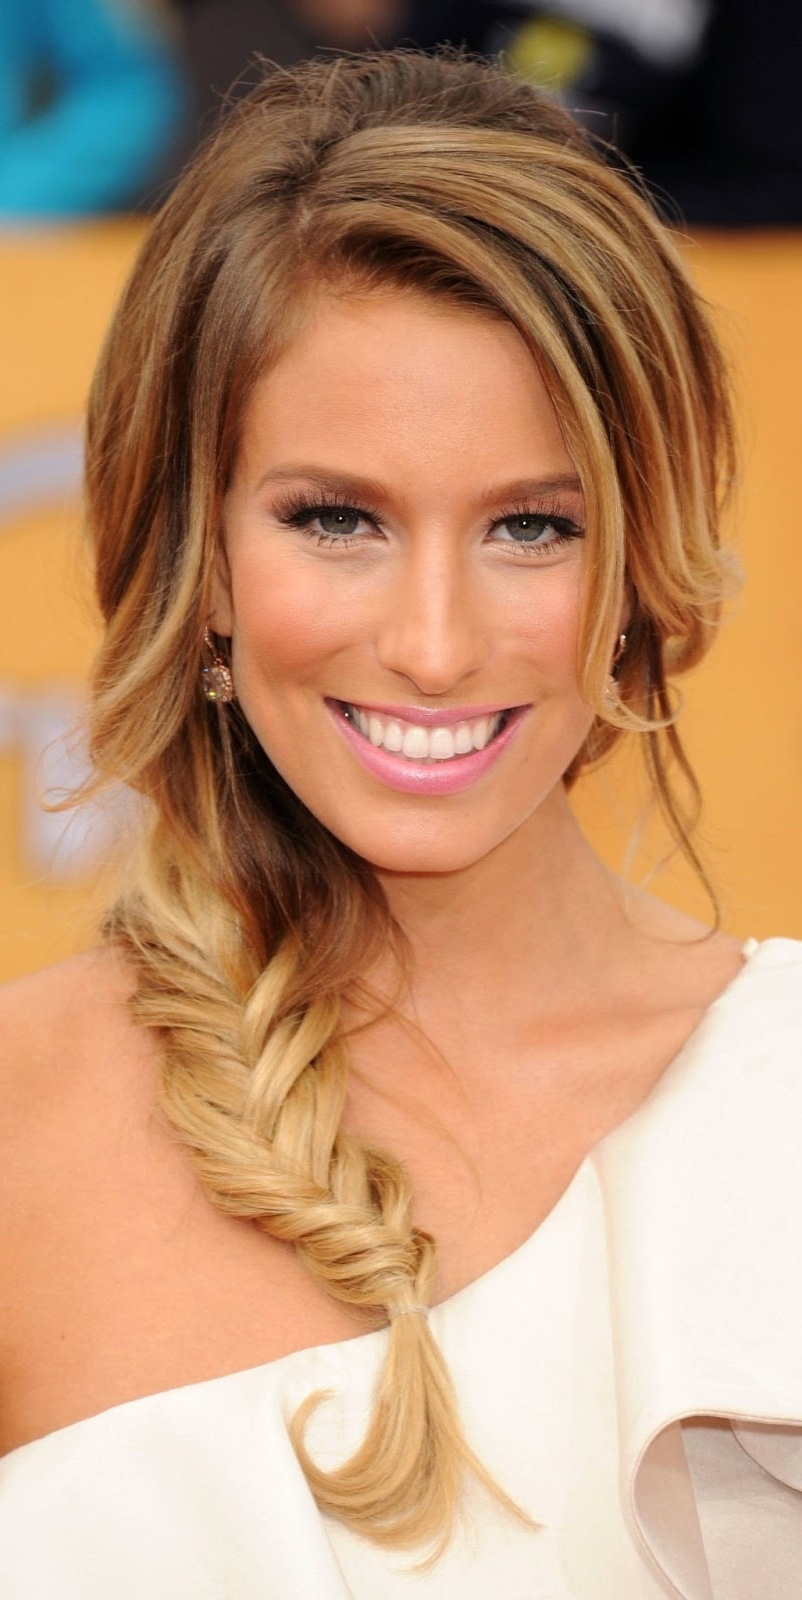 5 Easy Updo's For Mid Length Hair – Women Hairstyles For Fashionable Side Braid Hairstyles For Medium Hair (View 15 of 15)